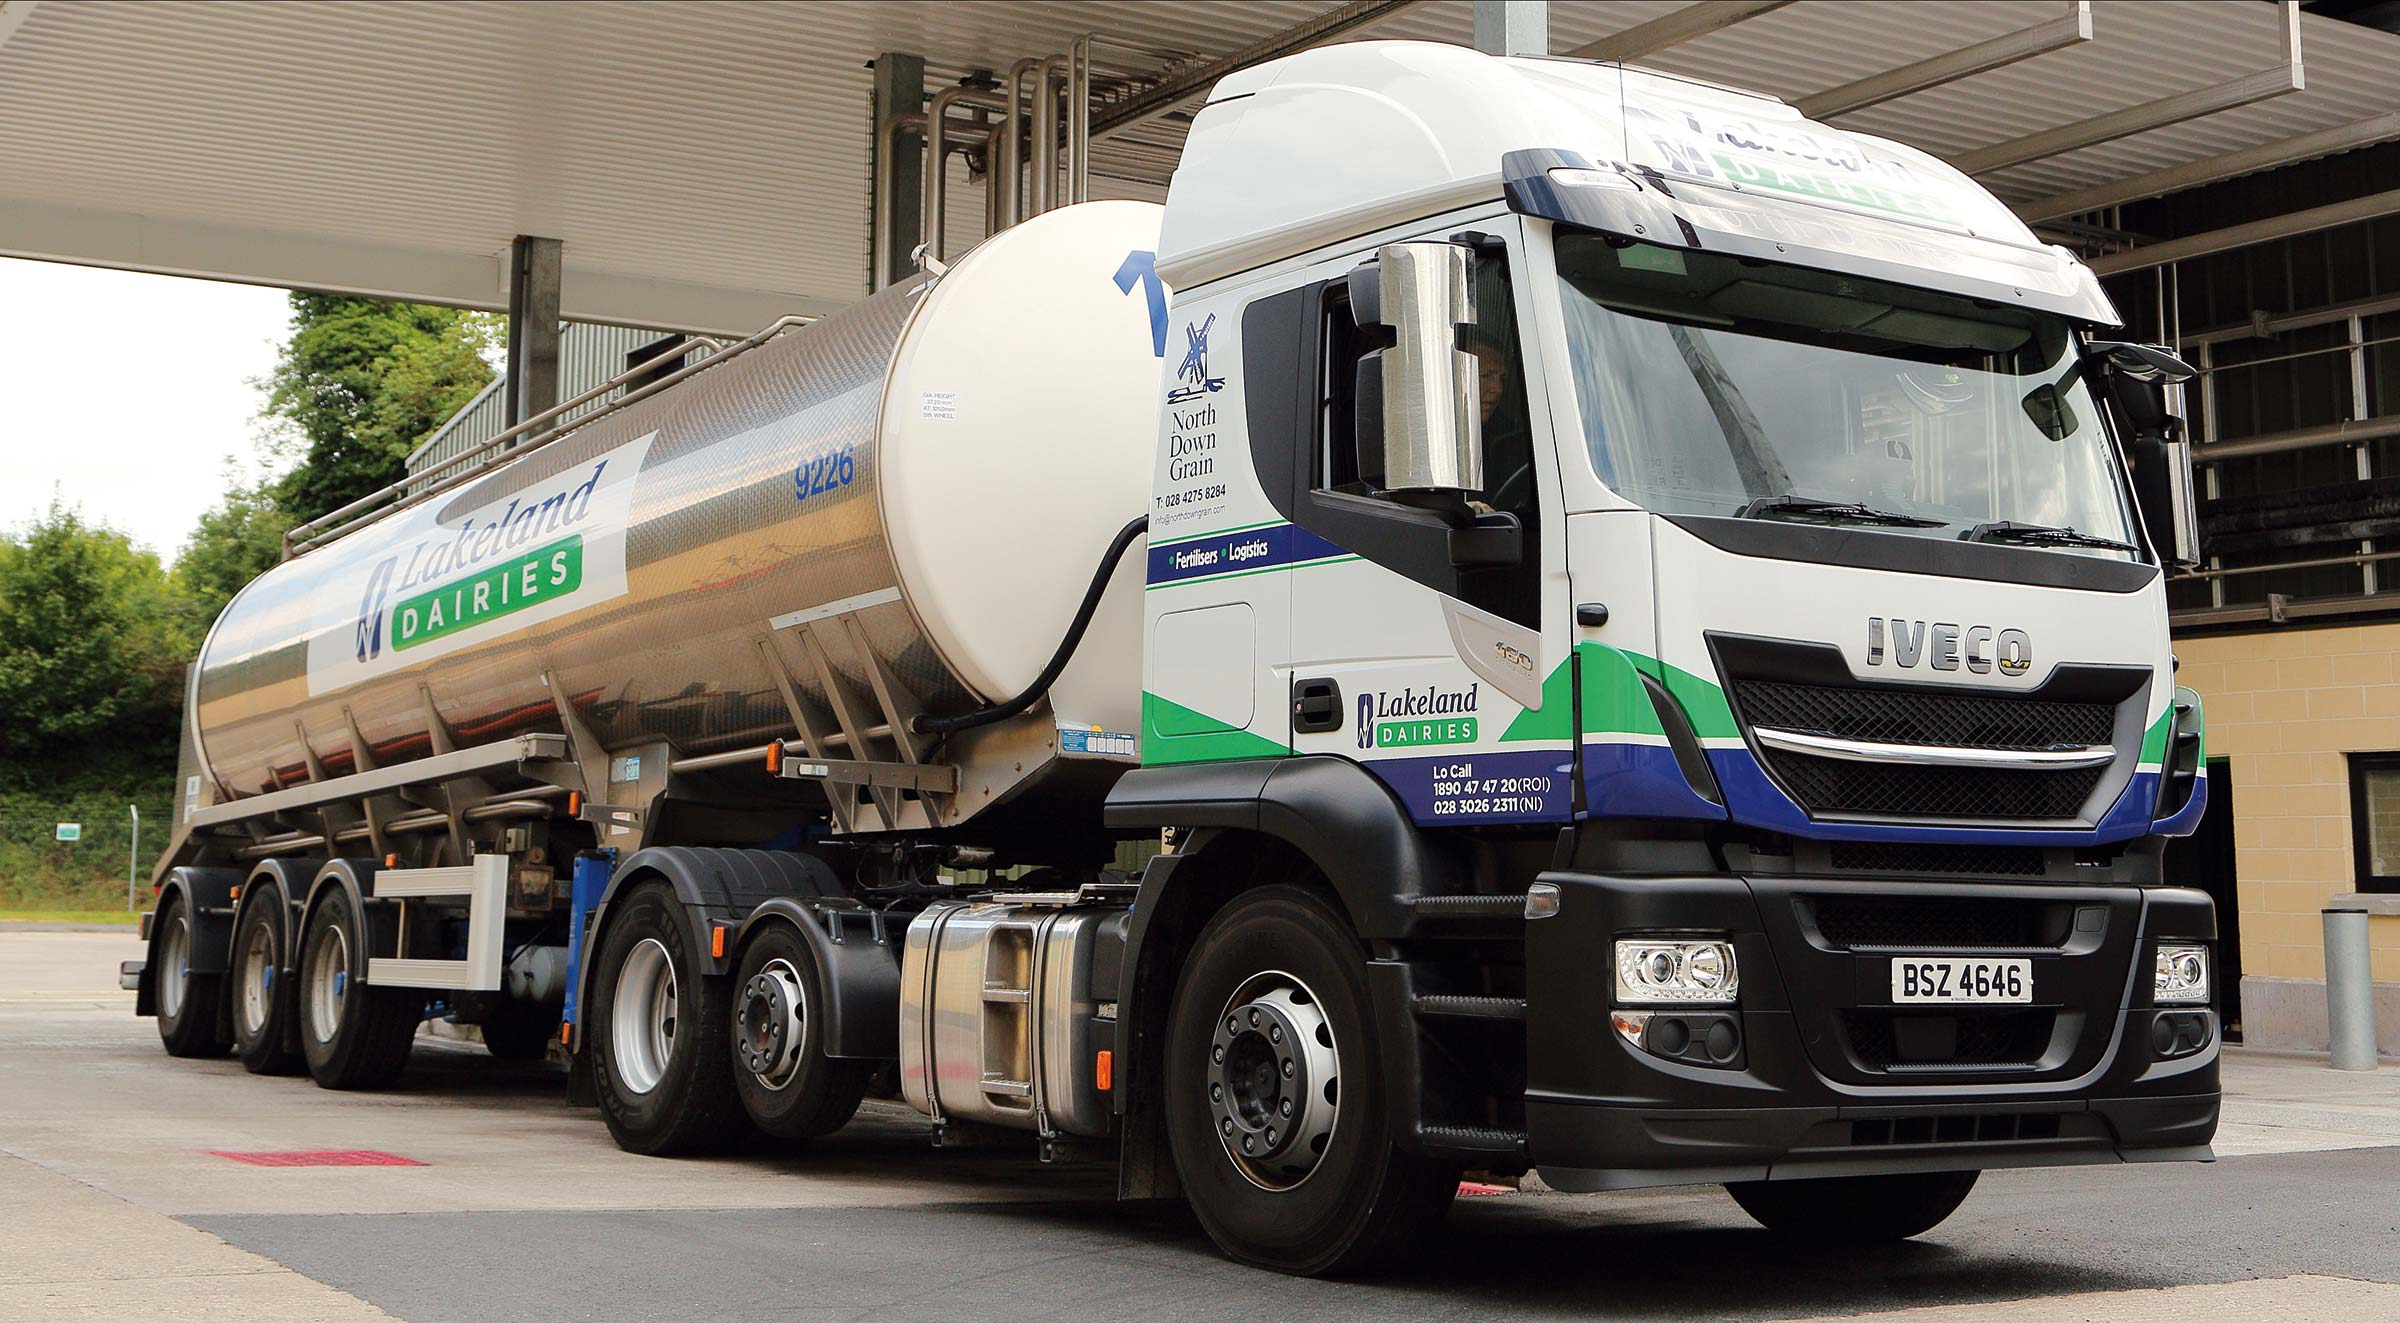 Lakeland Dairies truck